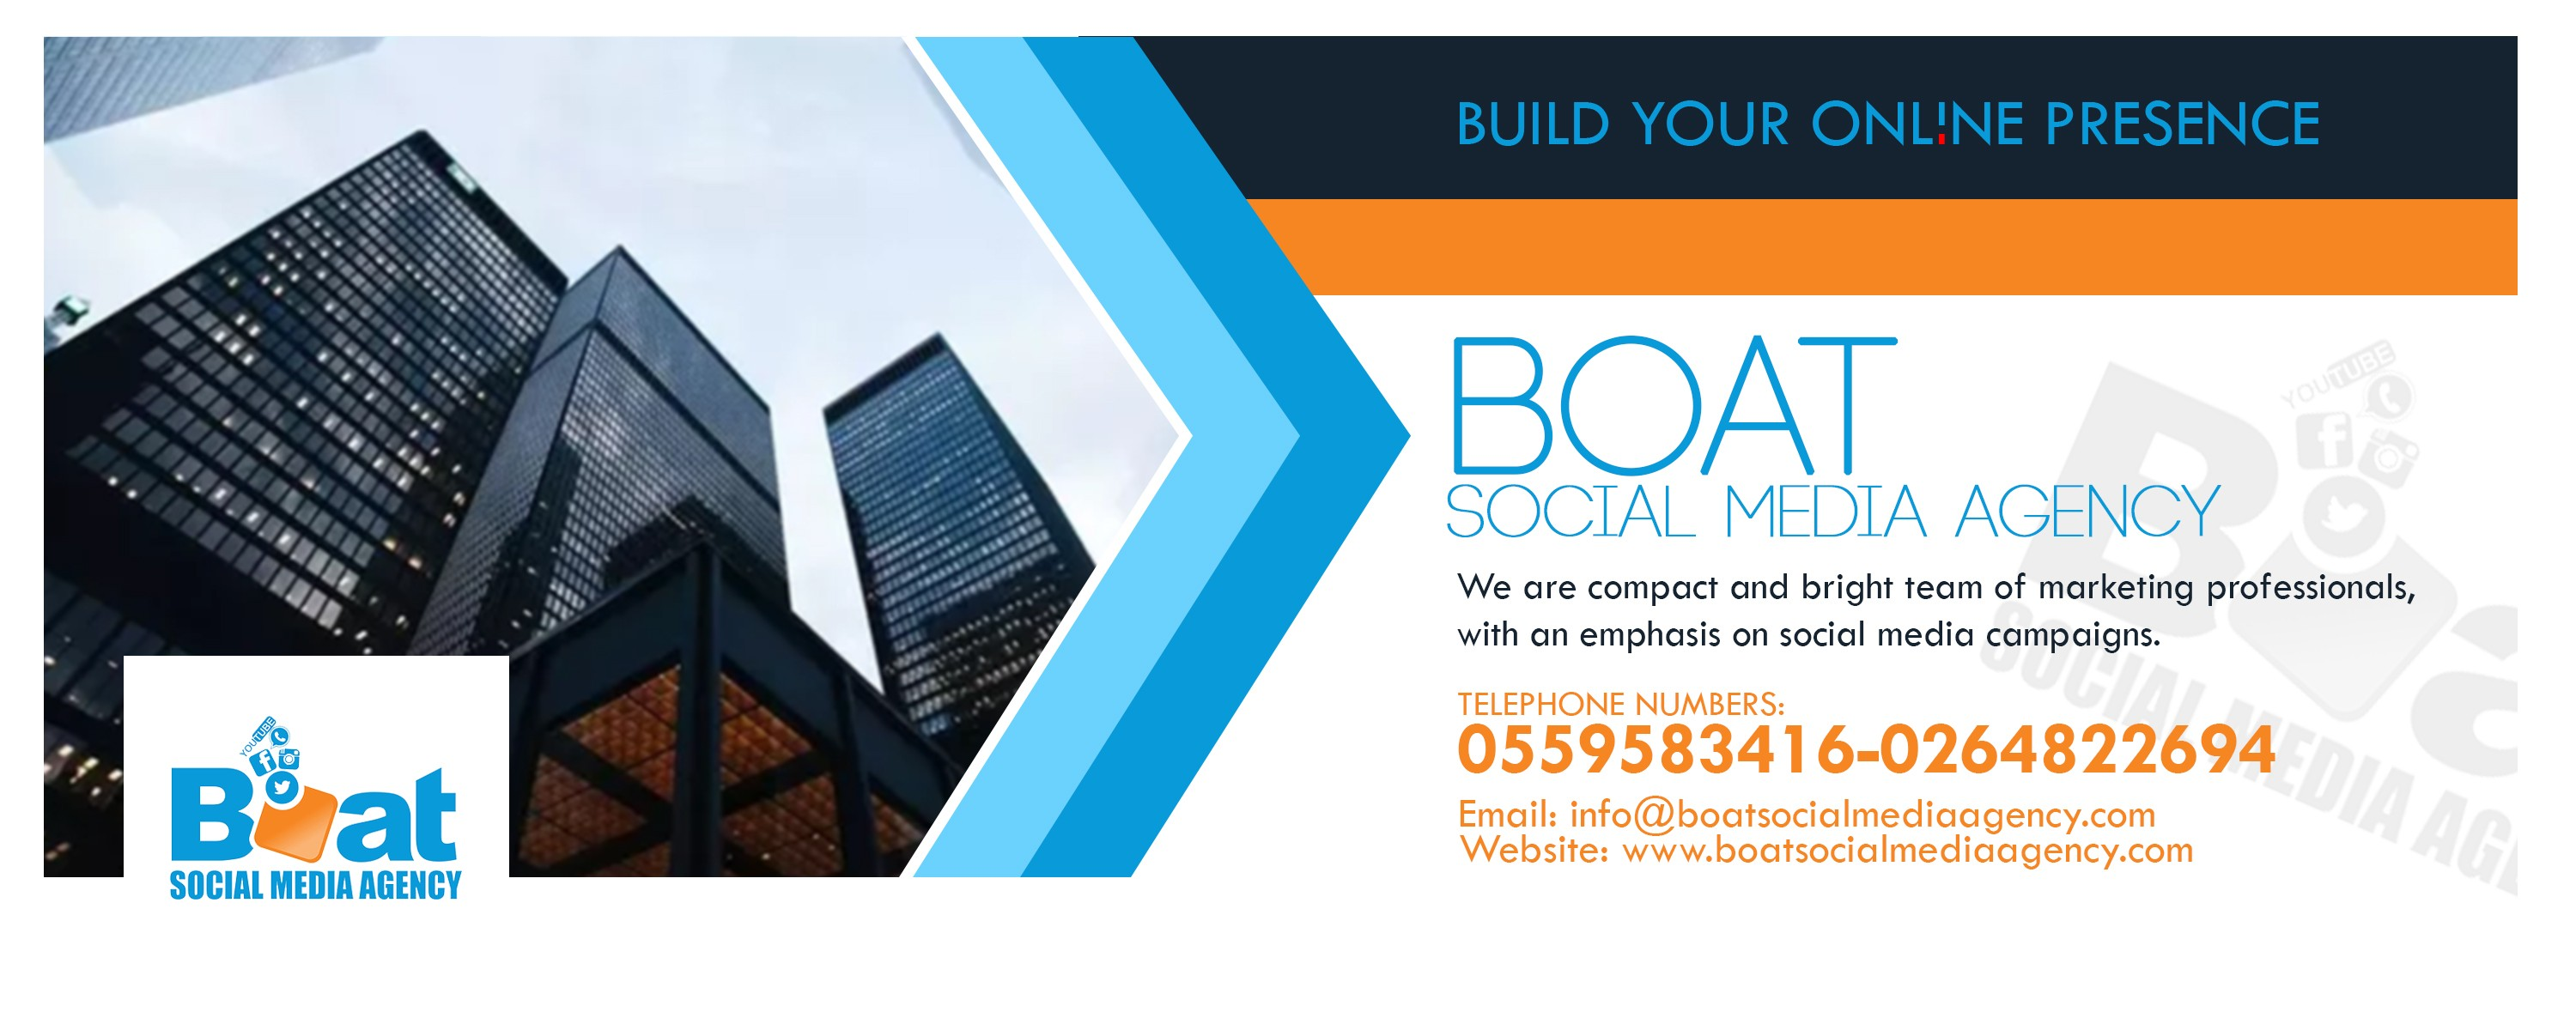 Boat Social Media Agency | LinkedIn